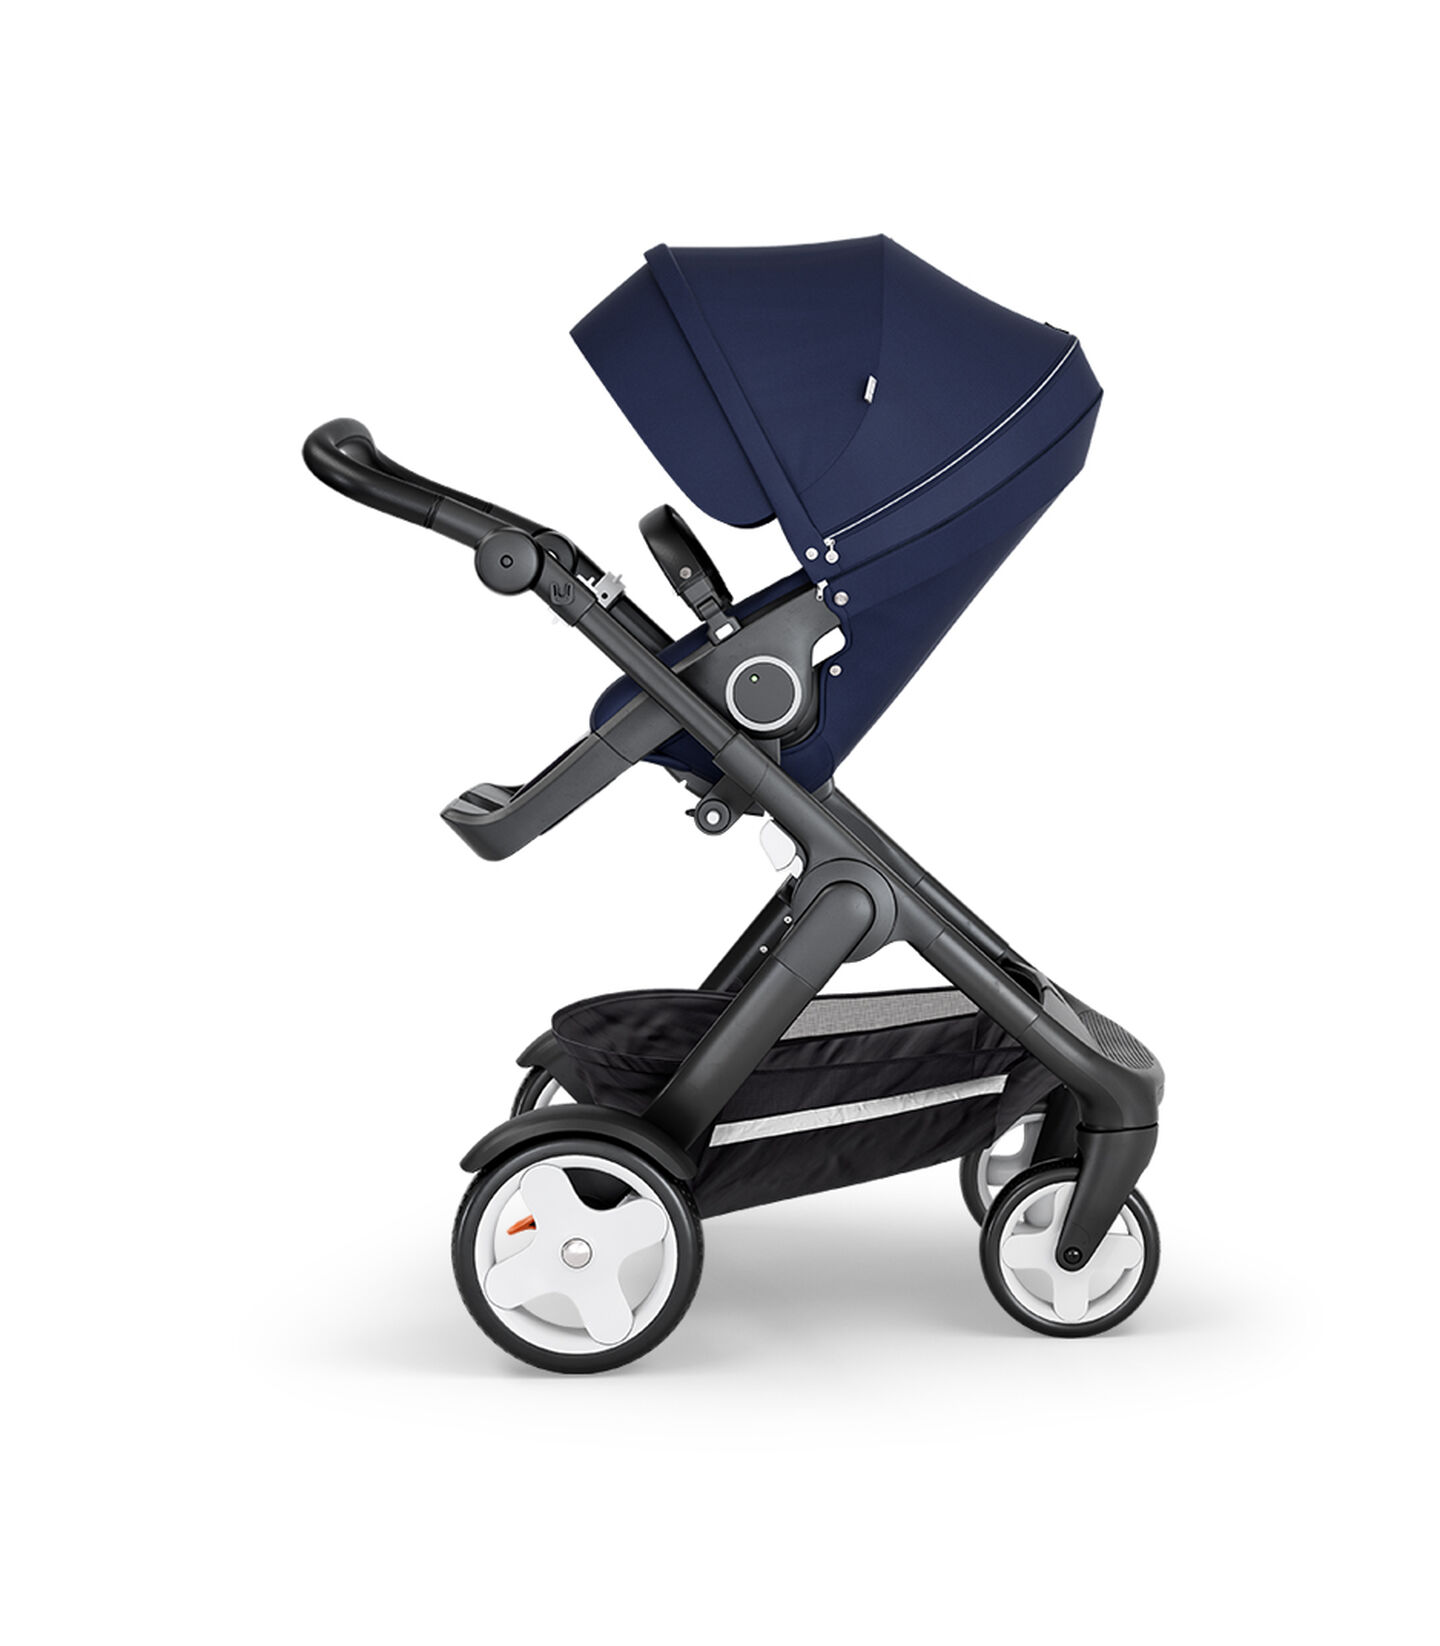 Stokke® Trailz™ with Black Chassis, Black Leatherette and Classic Wheels. Stokke® Stroller Seat, Deep Blue. view 2